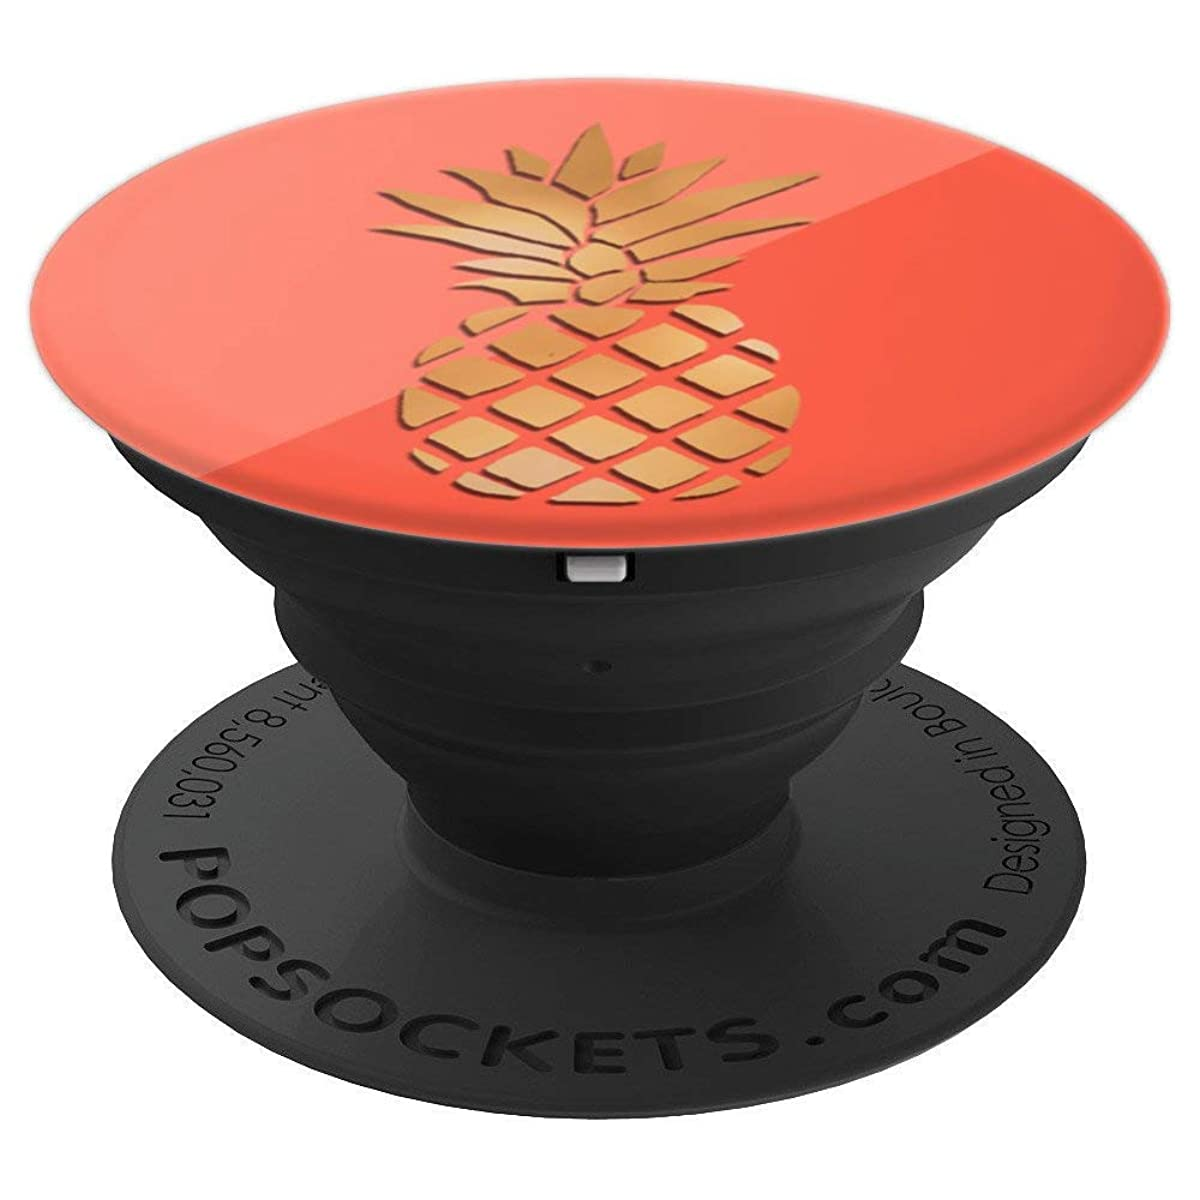 Pineapple Pop Socket - Popsocket Gold Pineapple Coral Design - PopSockets Grip and Stand for Phones and Tablets